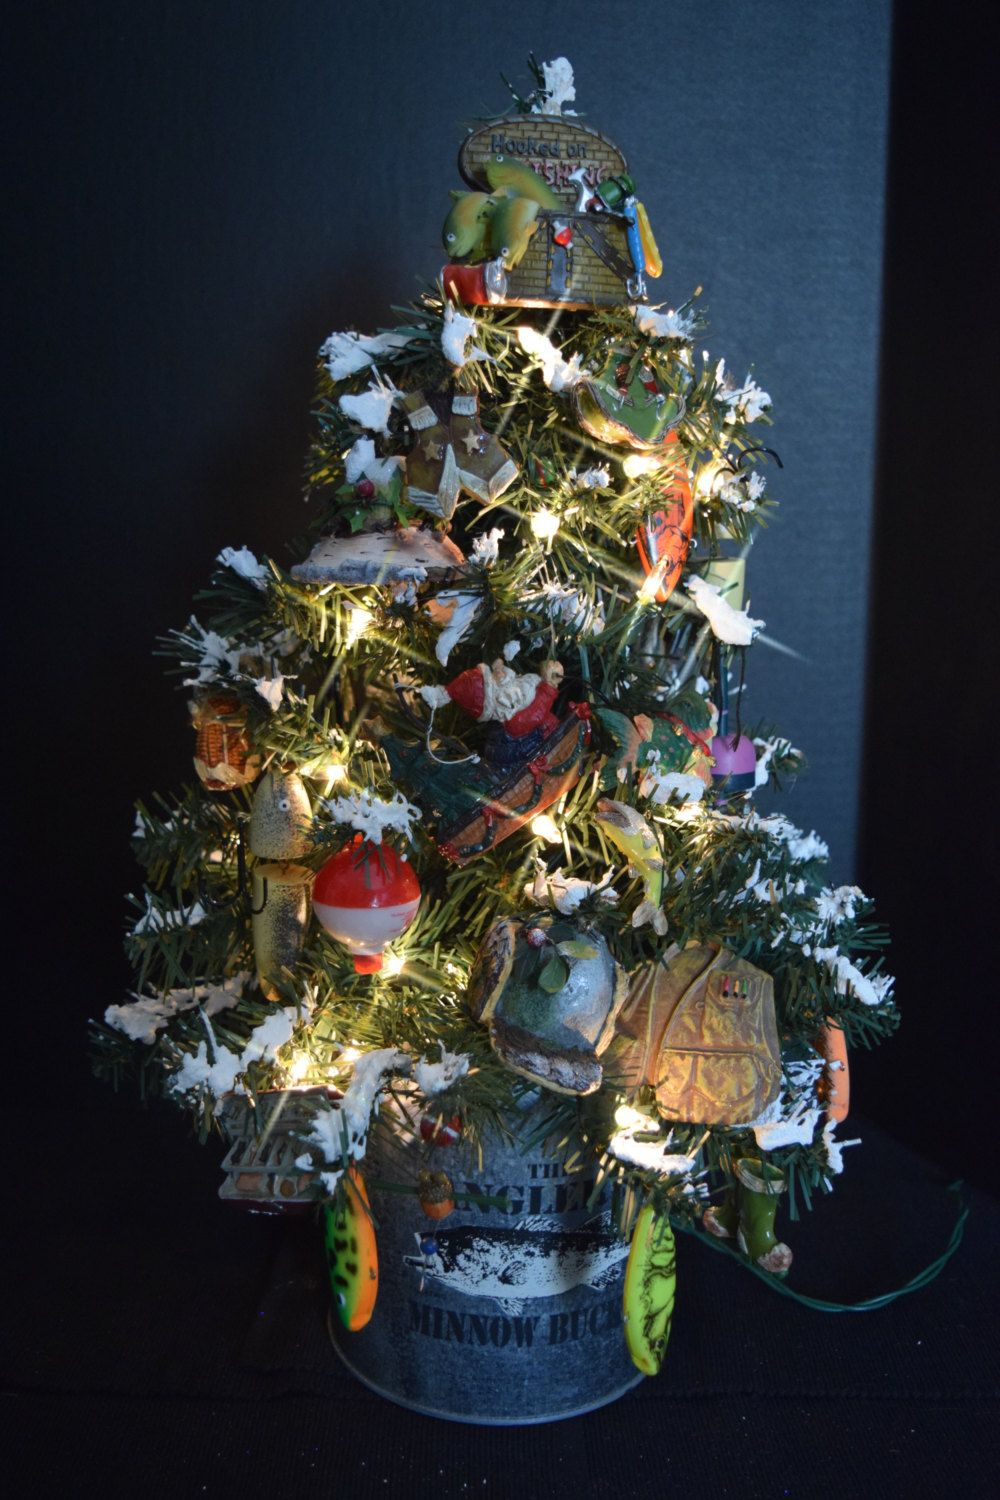 Easy To Set Up And Assemble Artificial Christmas Trees That Look Amazingly  Realistic Too!